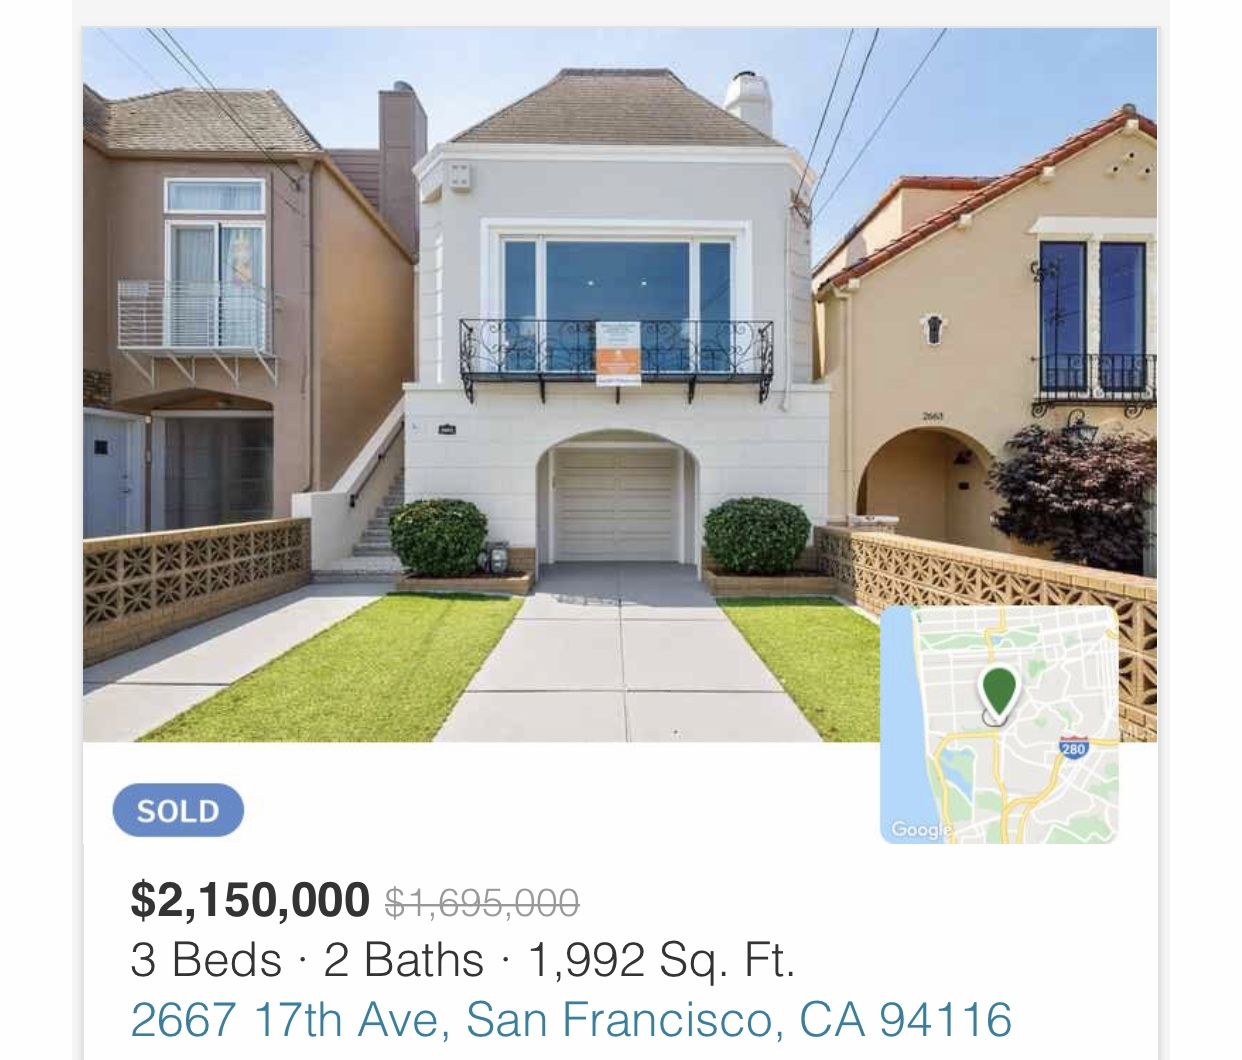 Thee type of house you can buy for $400K